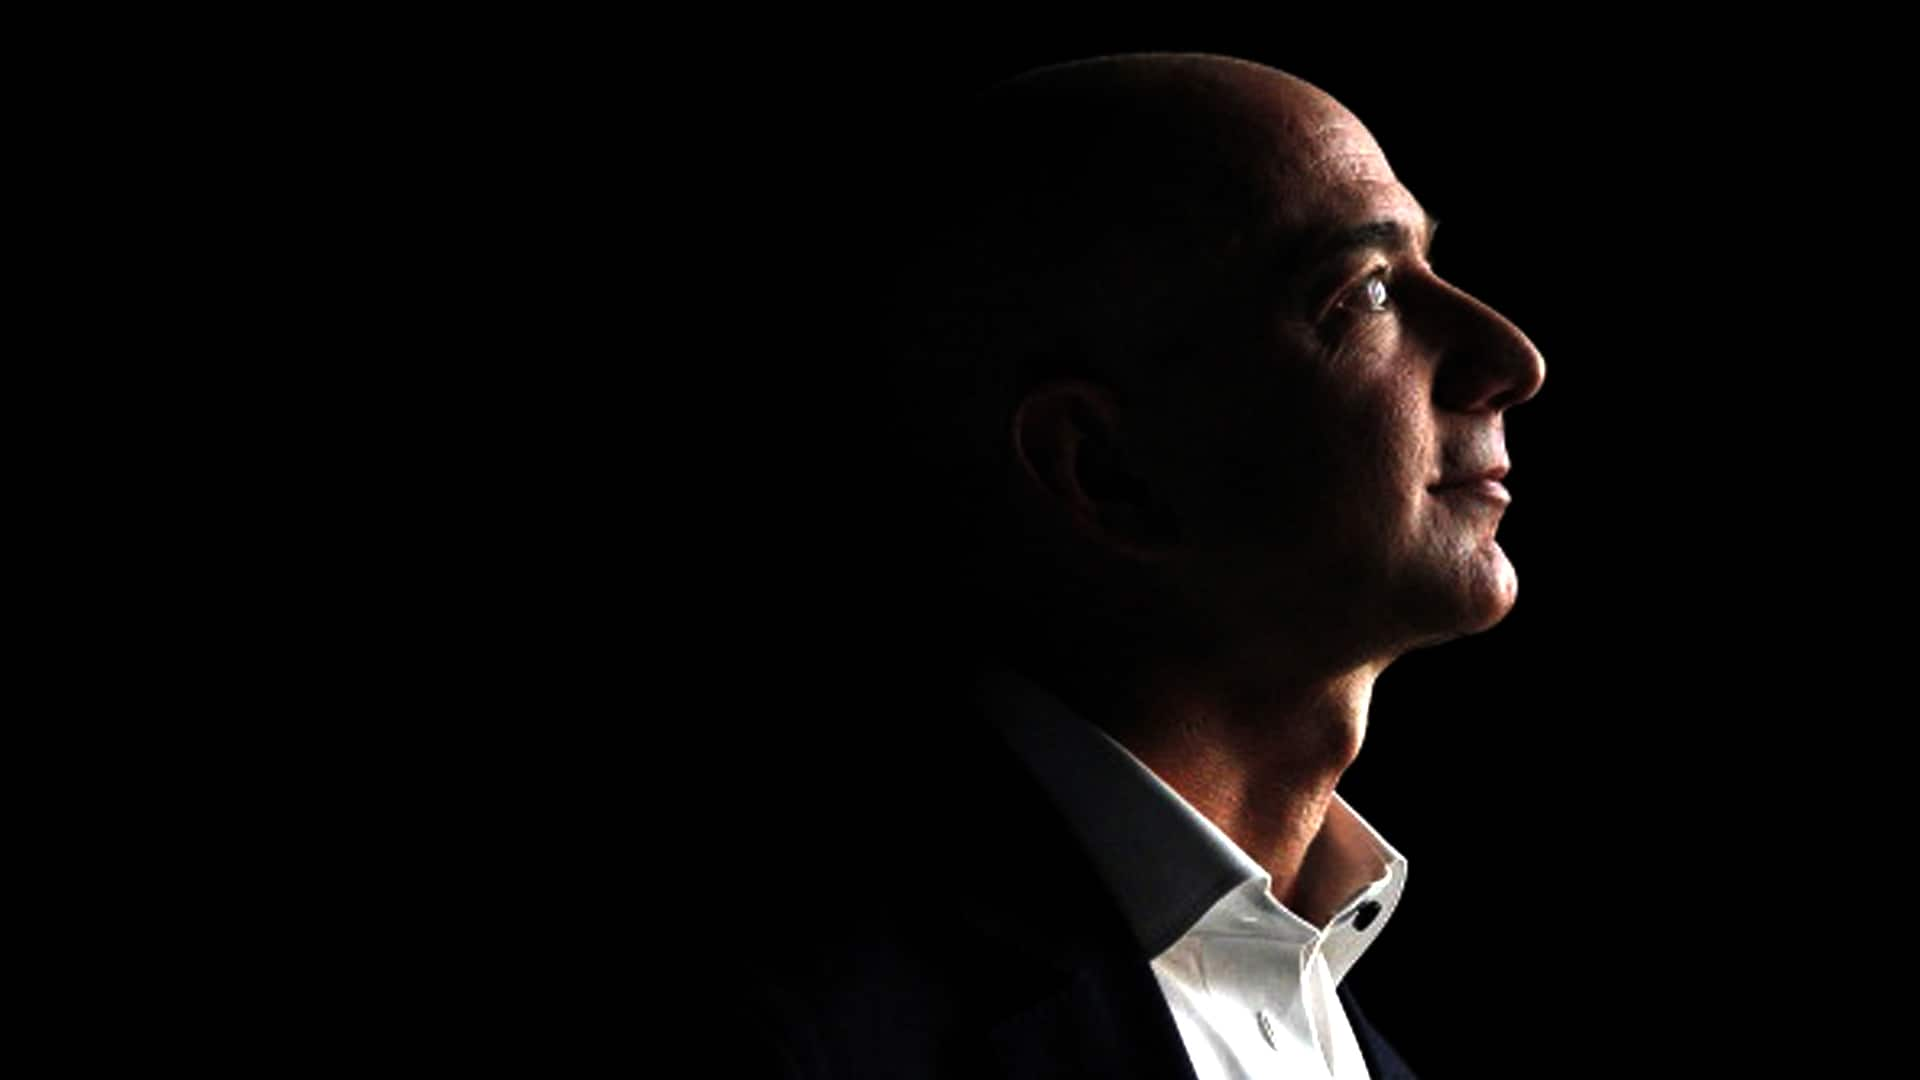 Jeff bezos becomes the richest man in the world